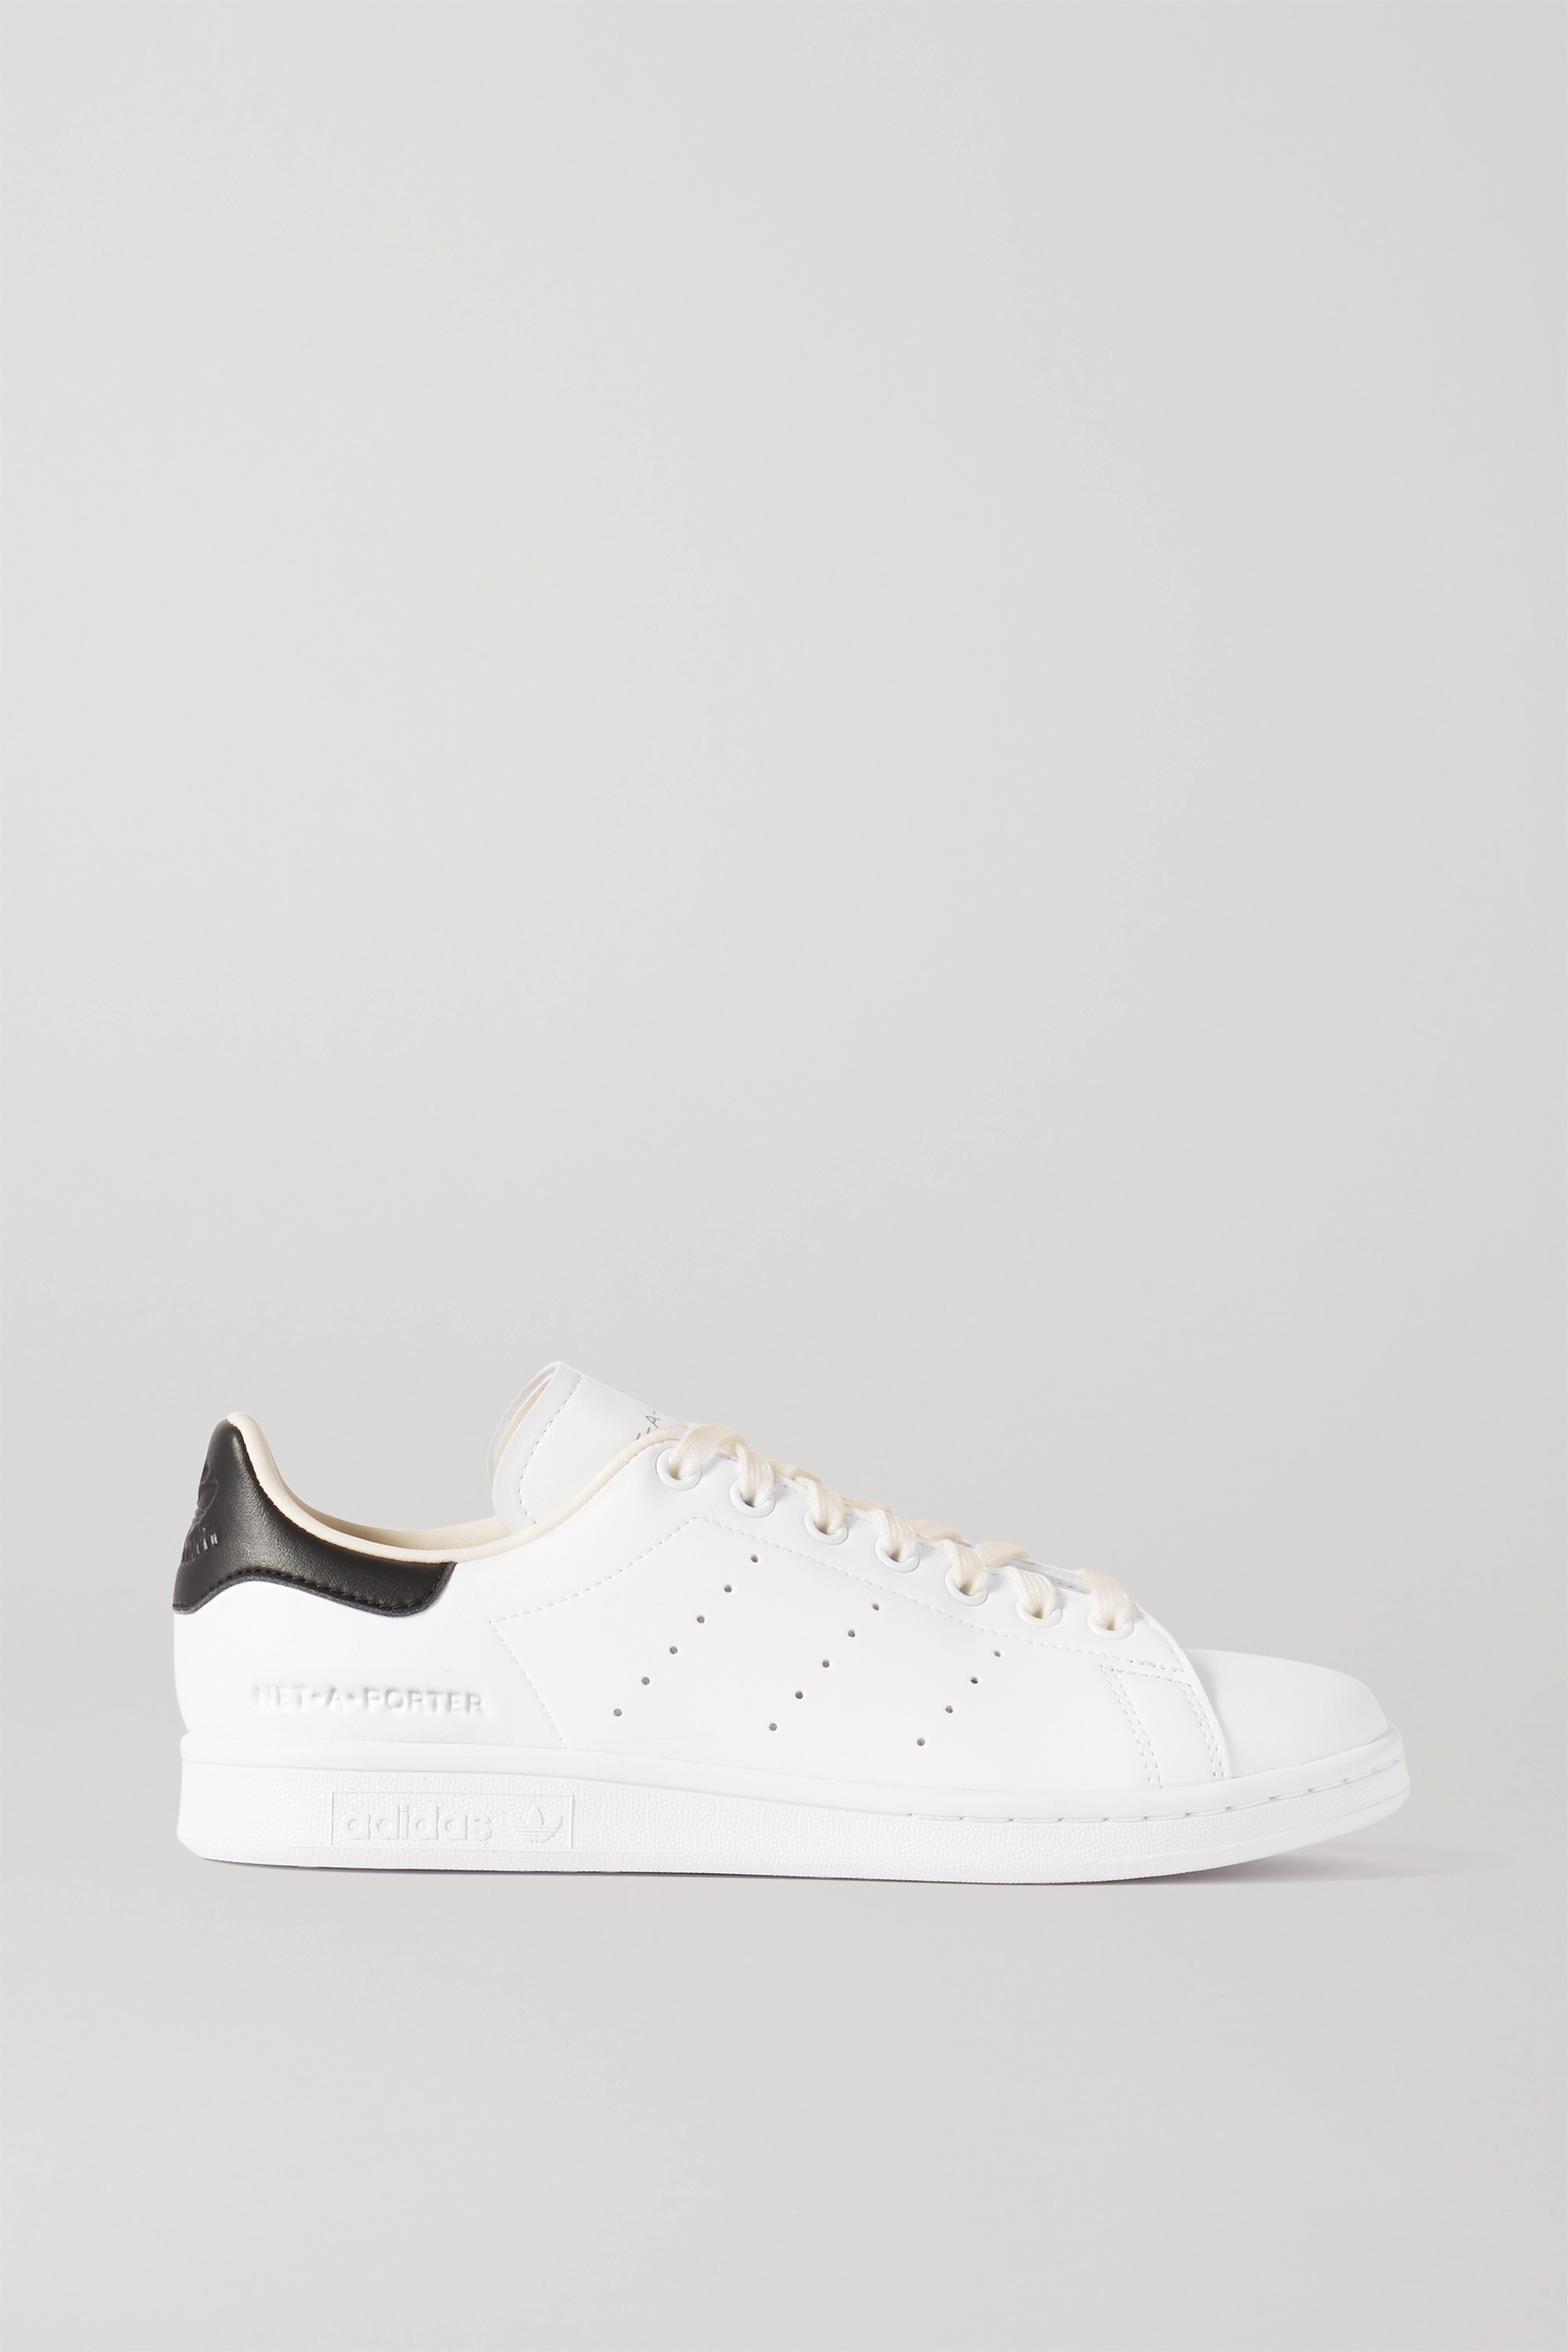 adidas Originals + NET-A-PORTER Stan Smith vegan leather sneakers